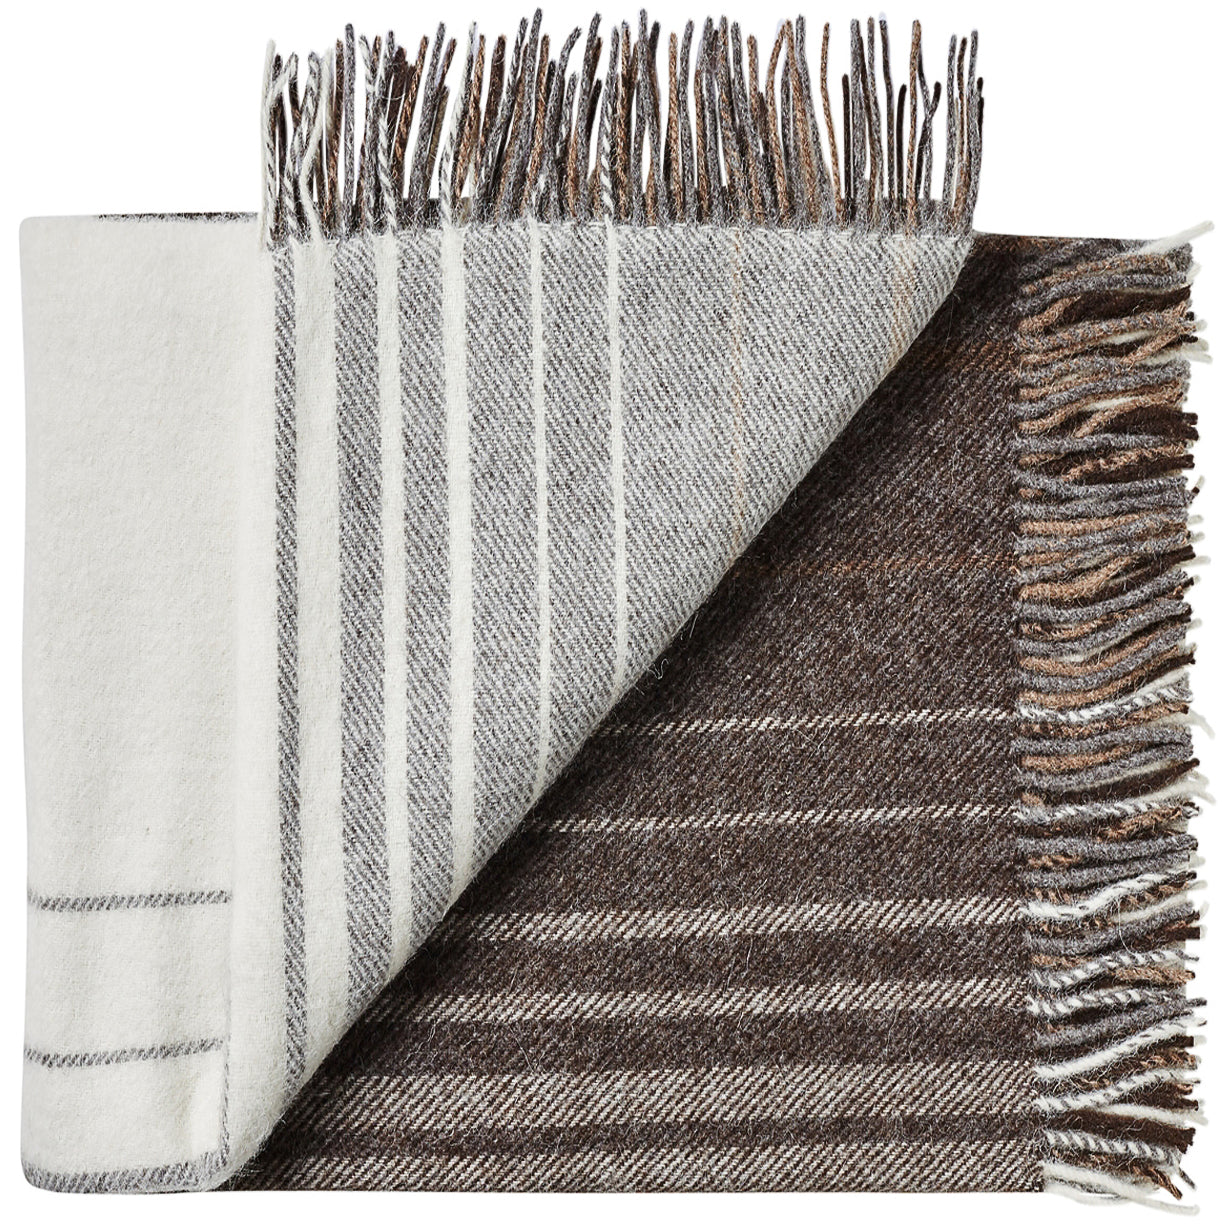 Soft Alpaca Wool Throw Blanket Brown and Tan Plaid